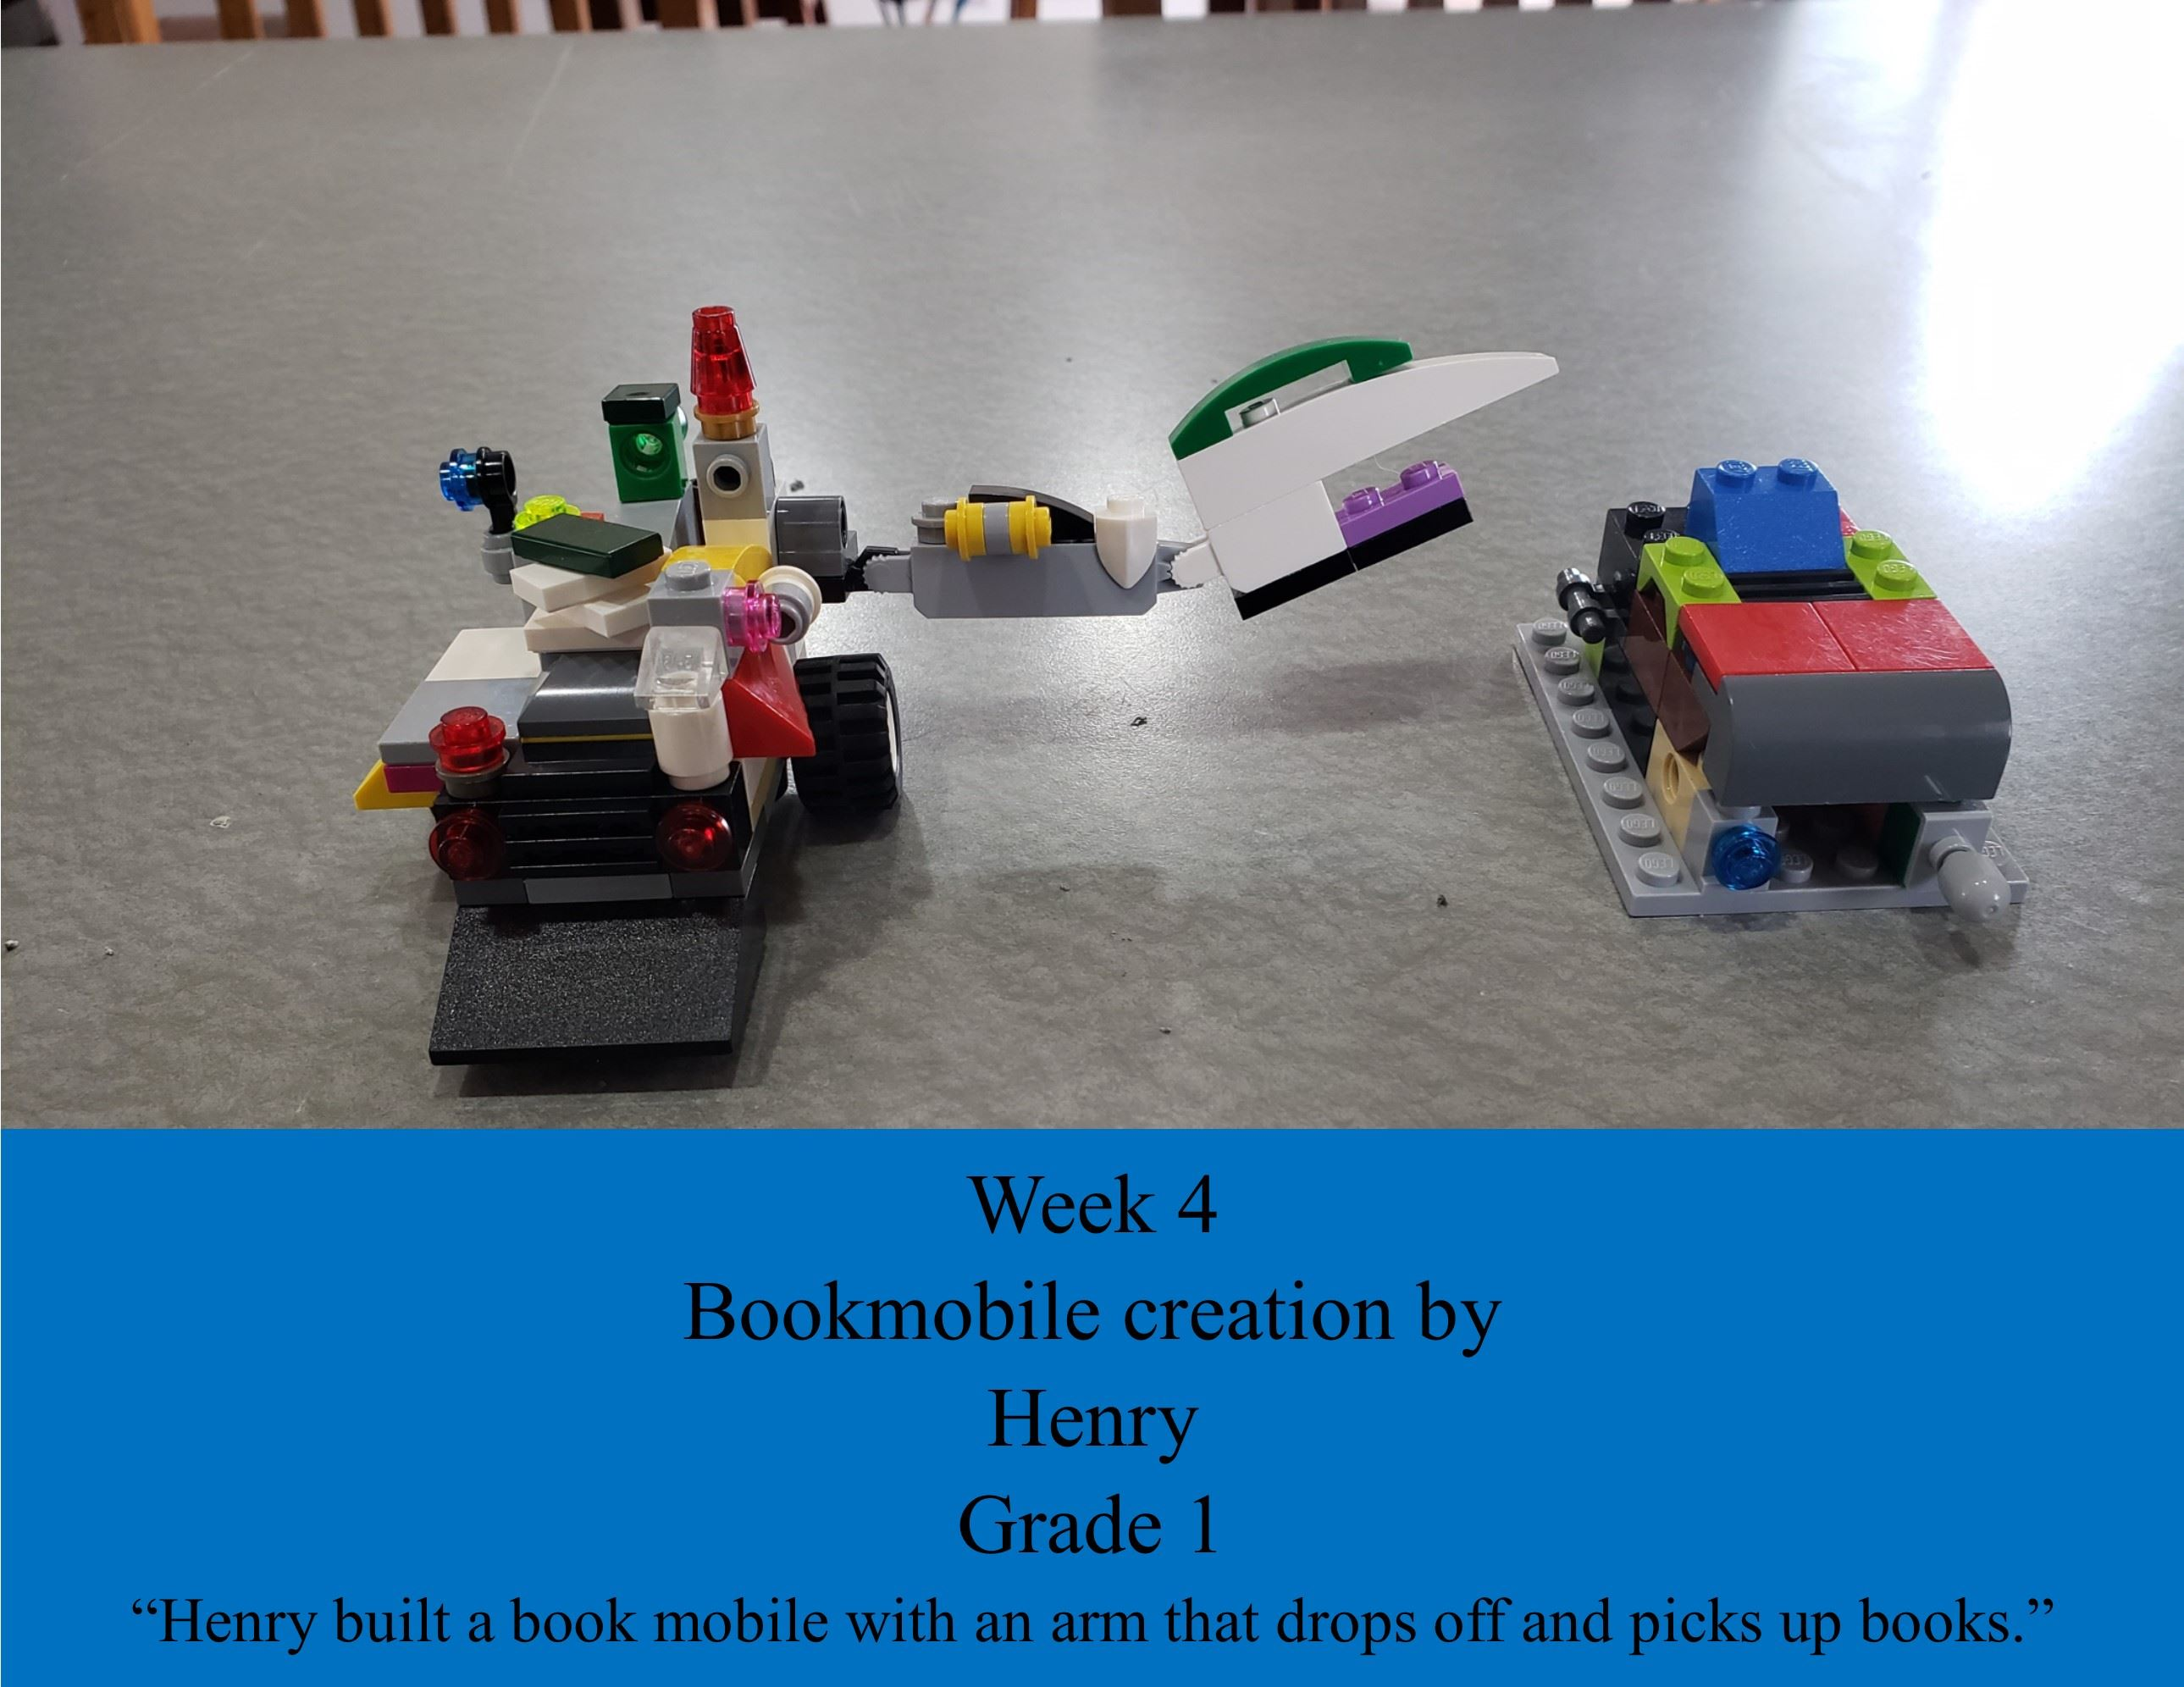 Henry LEGO Bookmobile creation for Week 4 Challenge